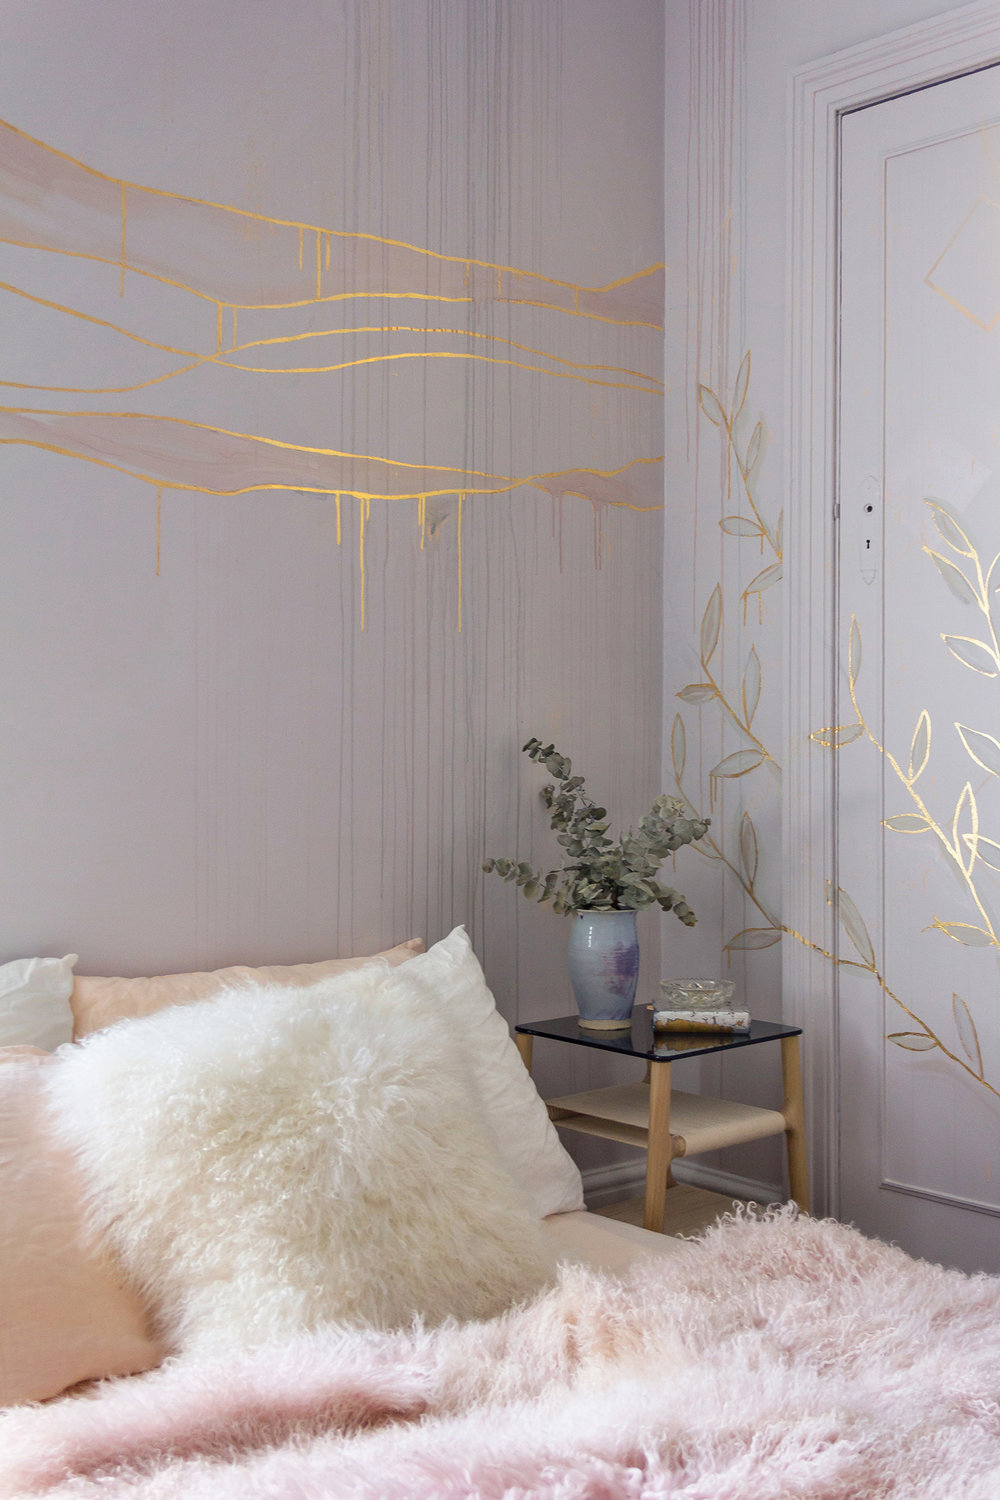 Gold leaf feature wall in cosy bedroom, the bed is made with peach linen sheets and a Mongolian sheepskin throw. Mural features gold waves and foliage.